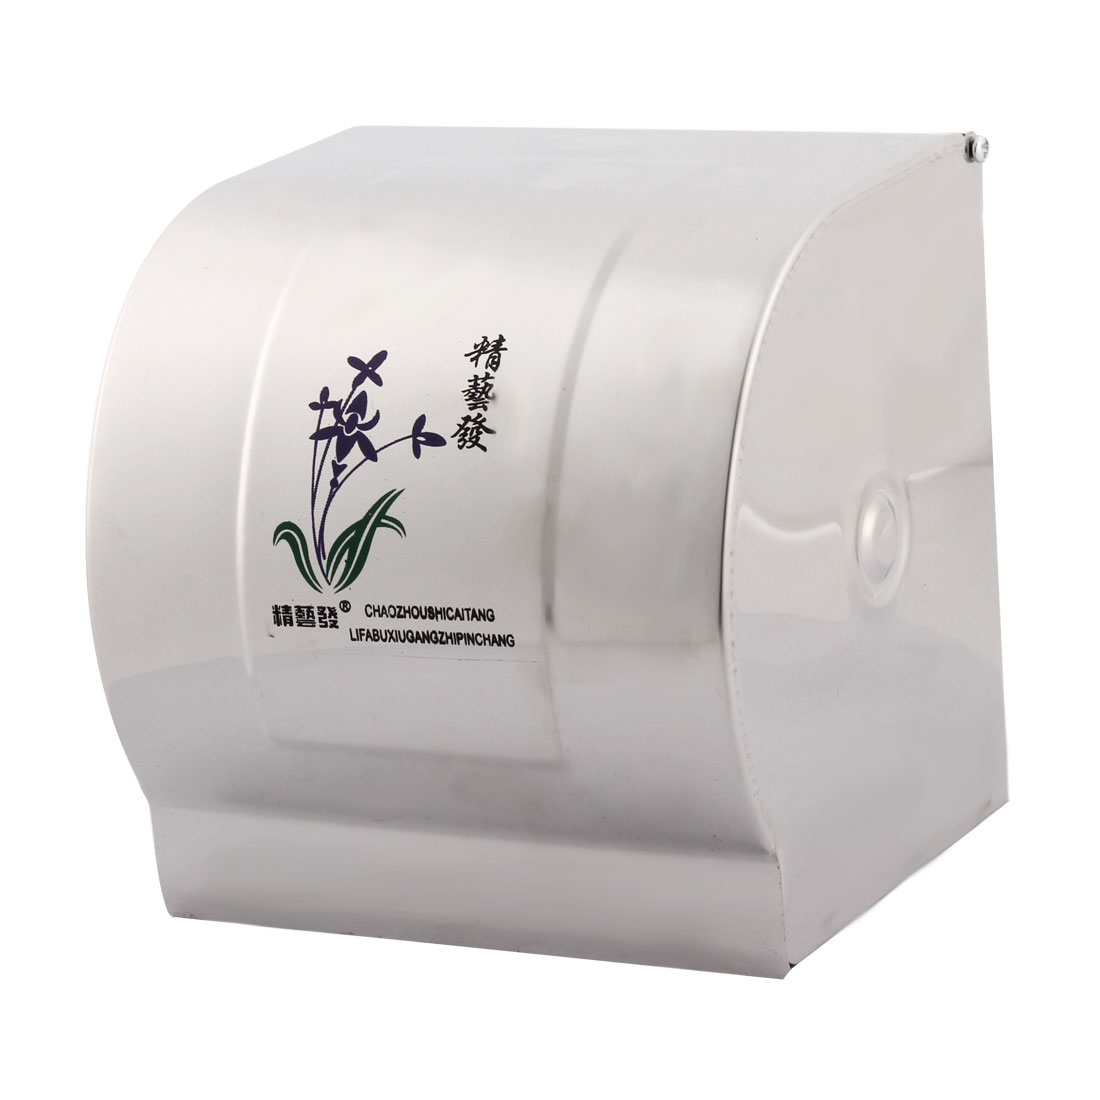 Hotel Bathroom Stainless Steel Wall Mount Paper Tissue Roller Holder Dispenser